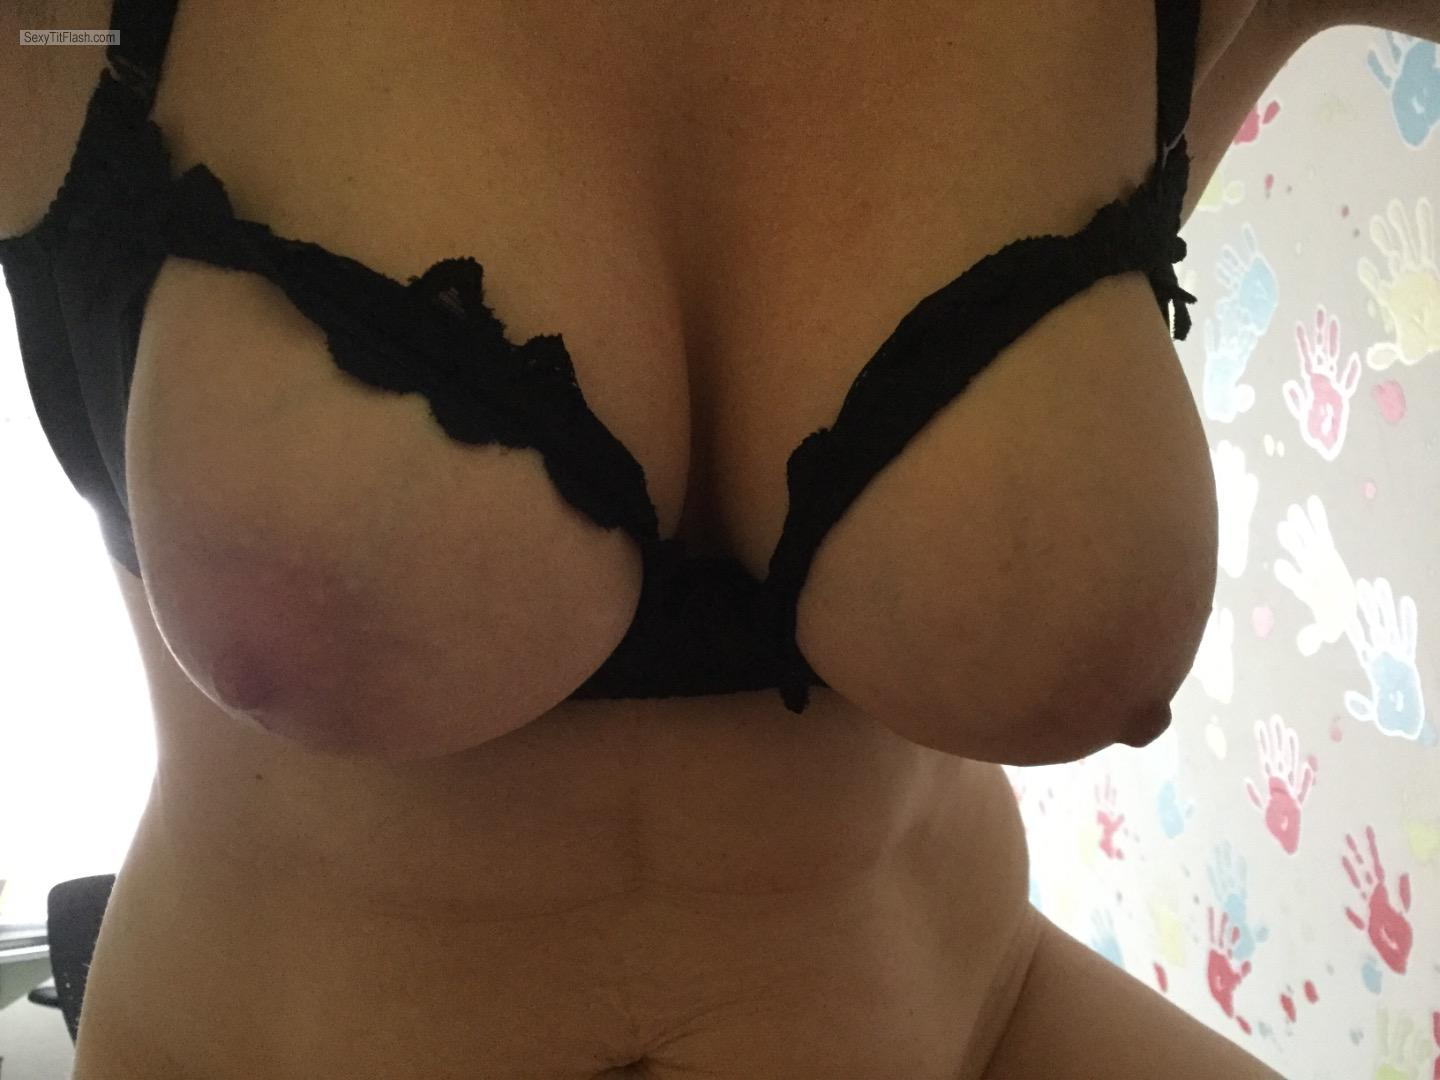 Tit Flash: My Big Tits - Kjsxxx from Germany